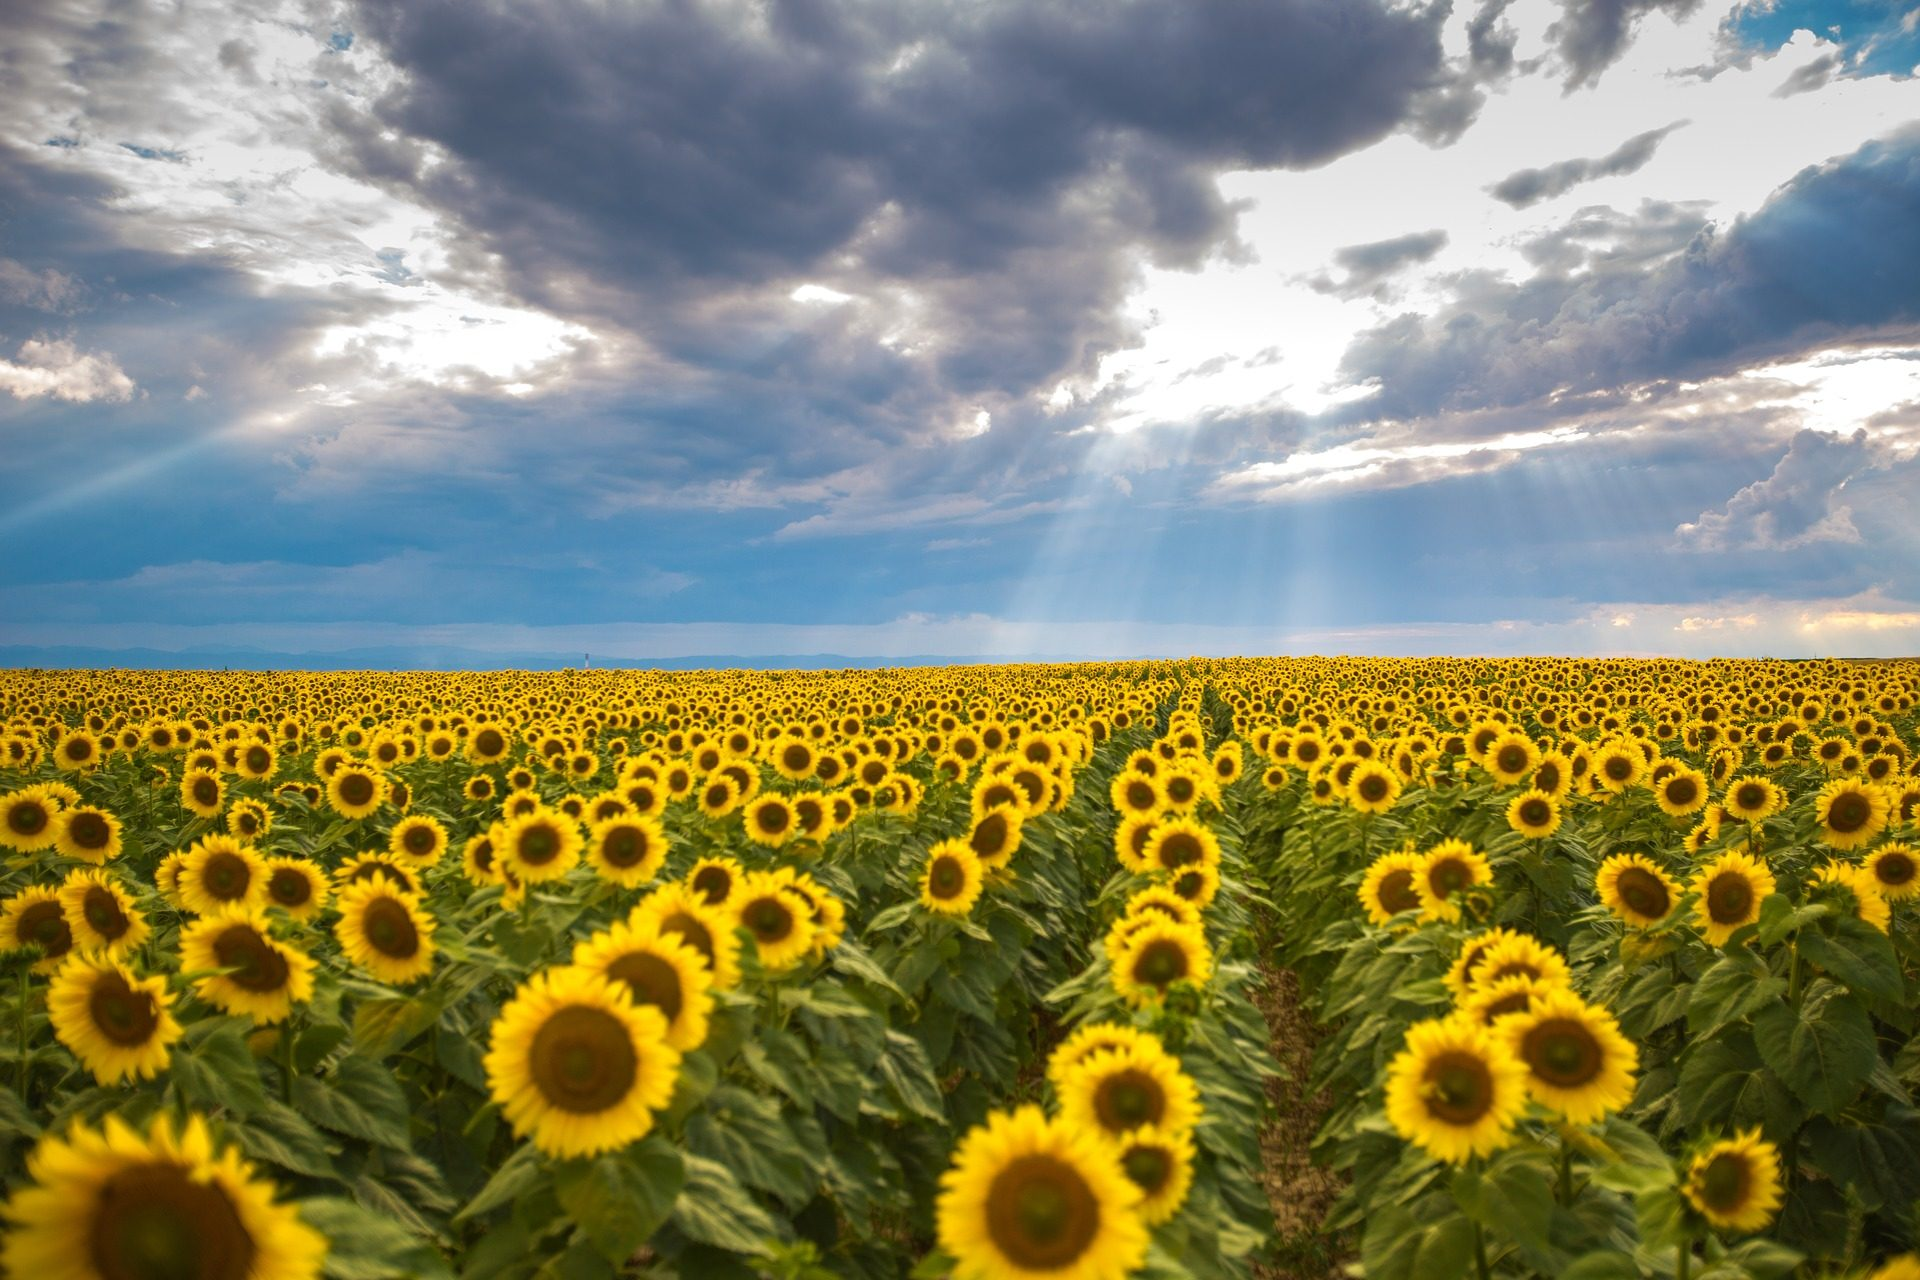 tournesols, Plantation, culture, plantes, Sky, nuageux, nuages - Fonds d'écran HD - Professor-falken.com